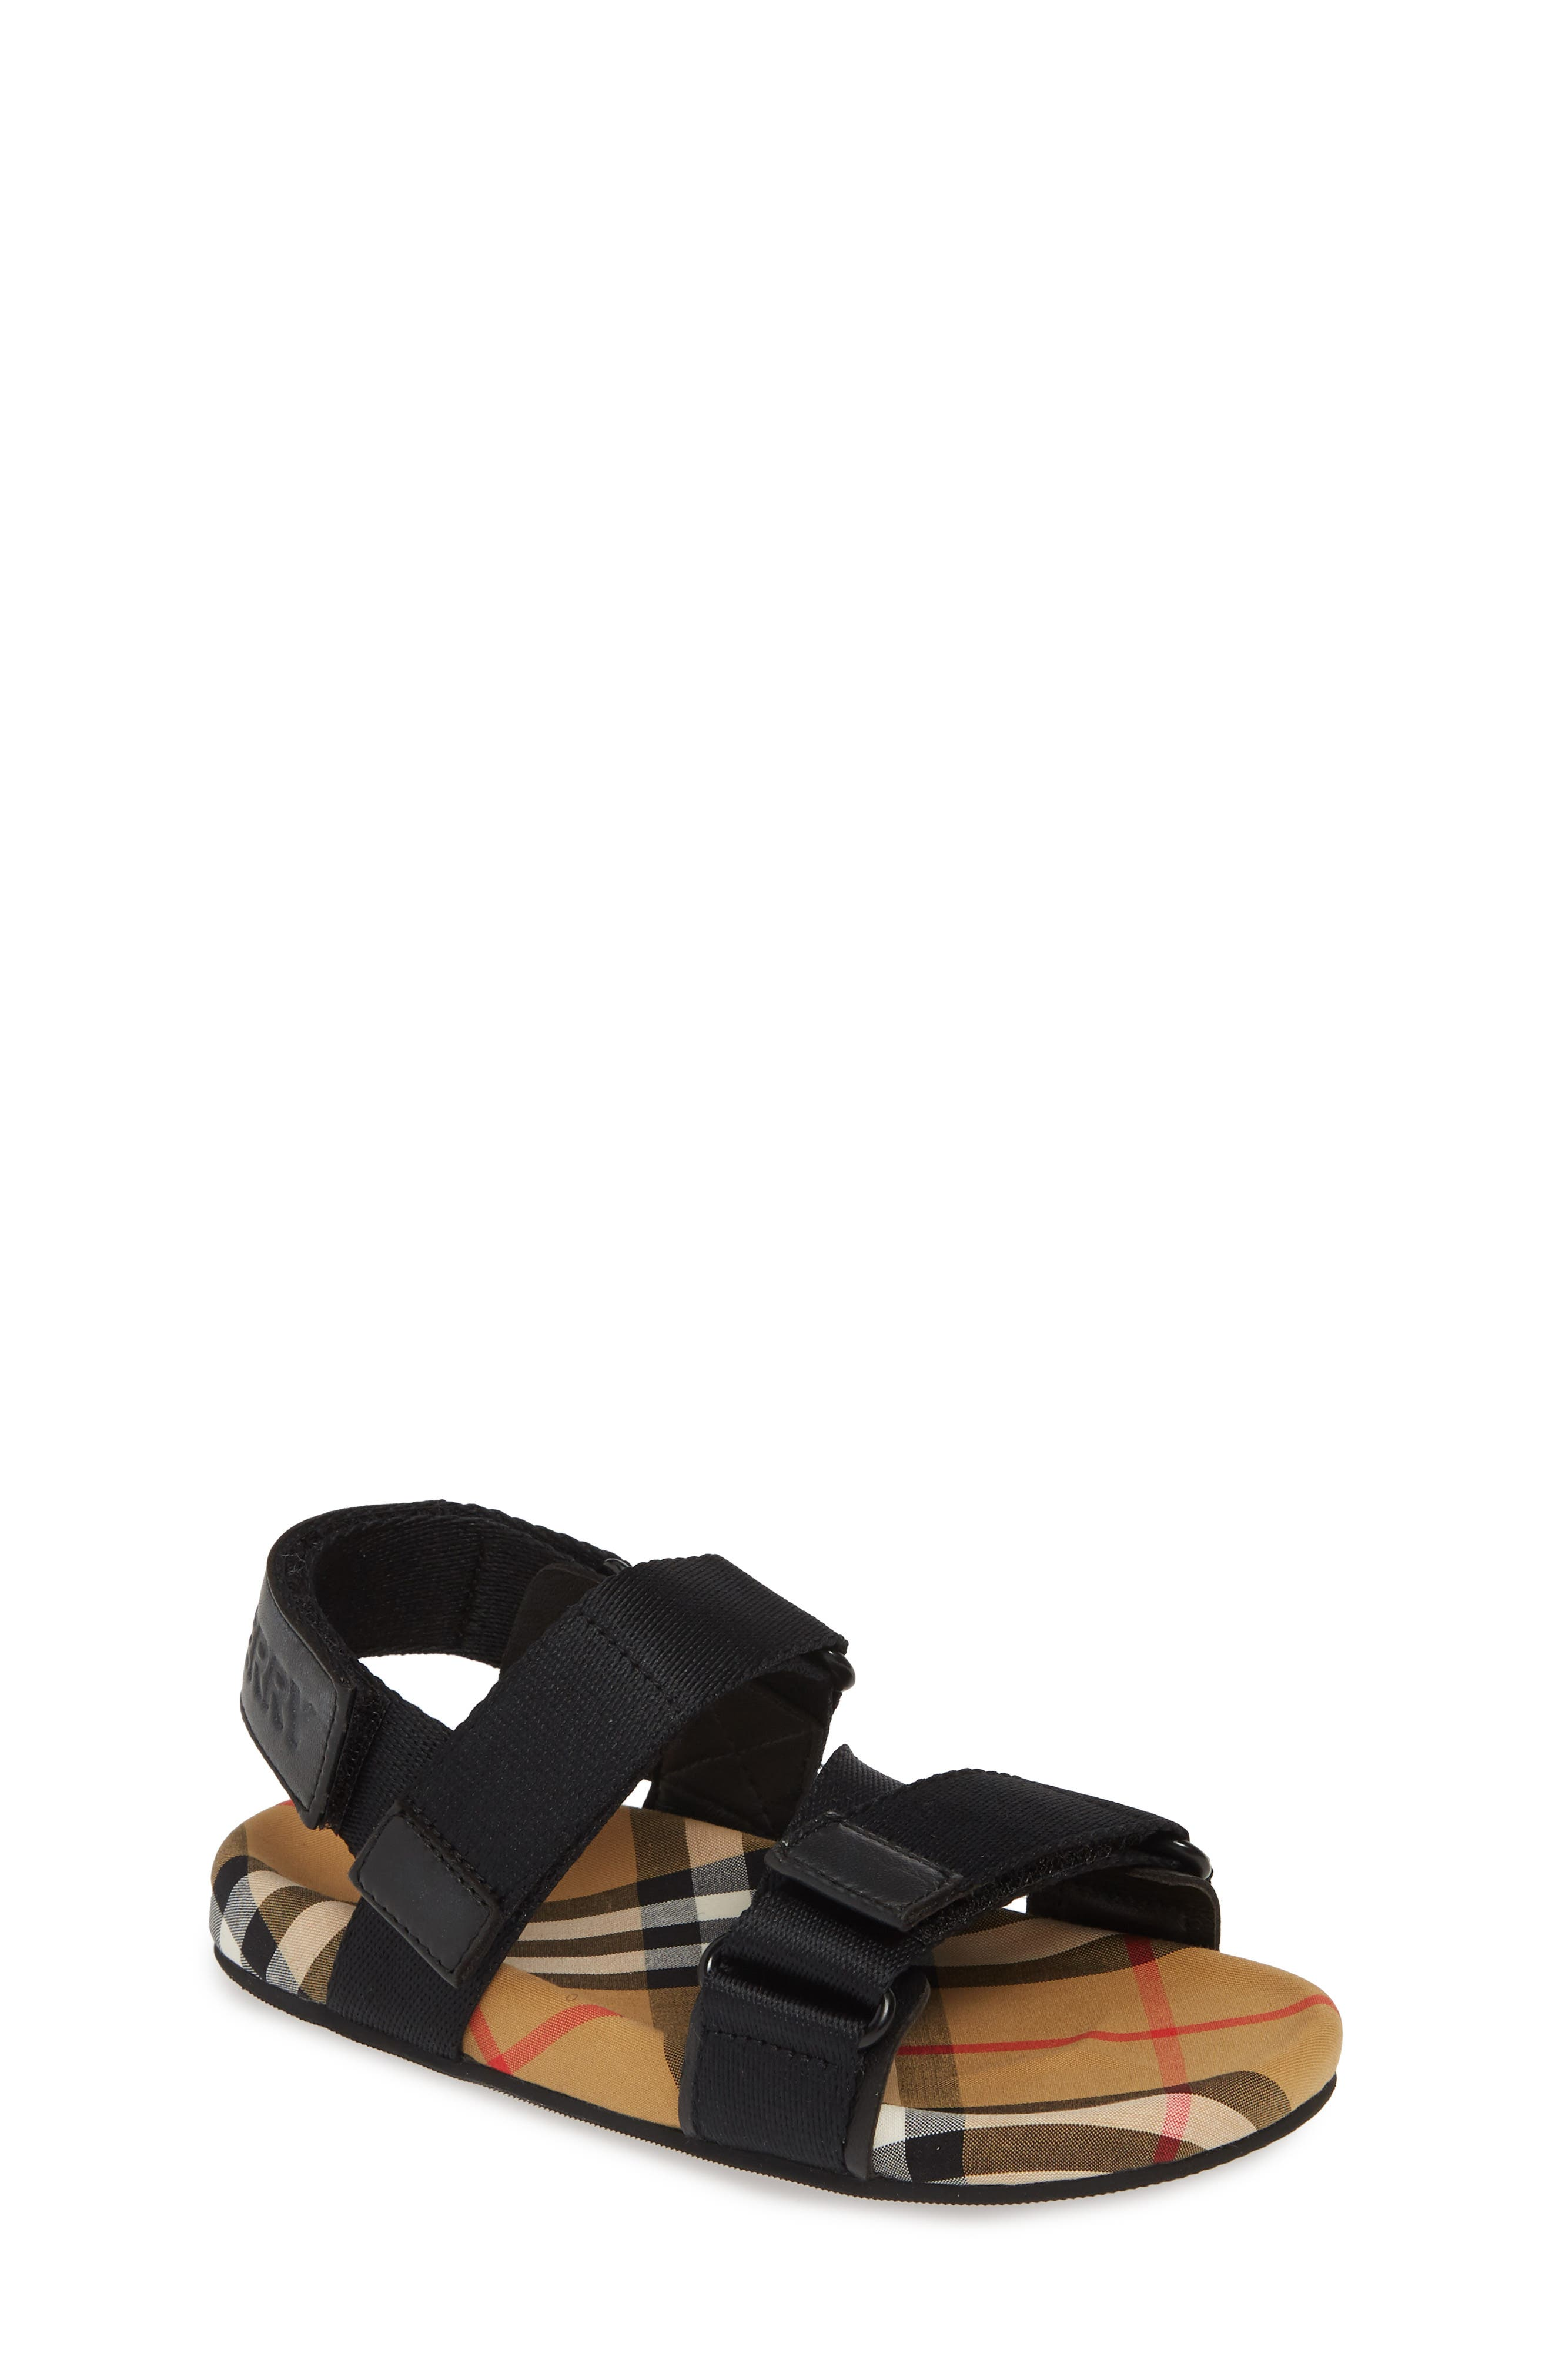 Redmire Sandal, Main, color, BLACK/ANTIQUE YELLOW